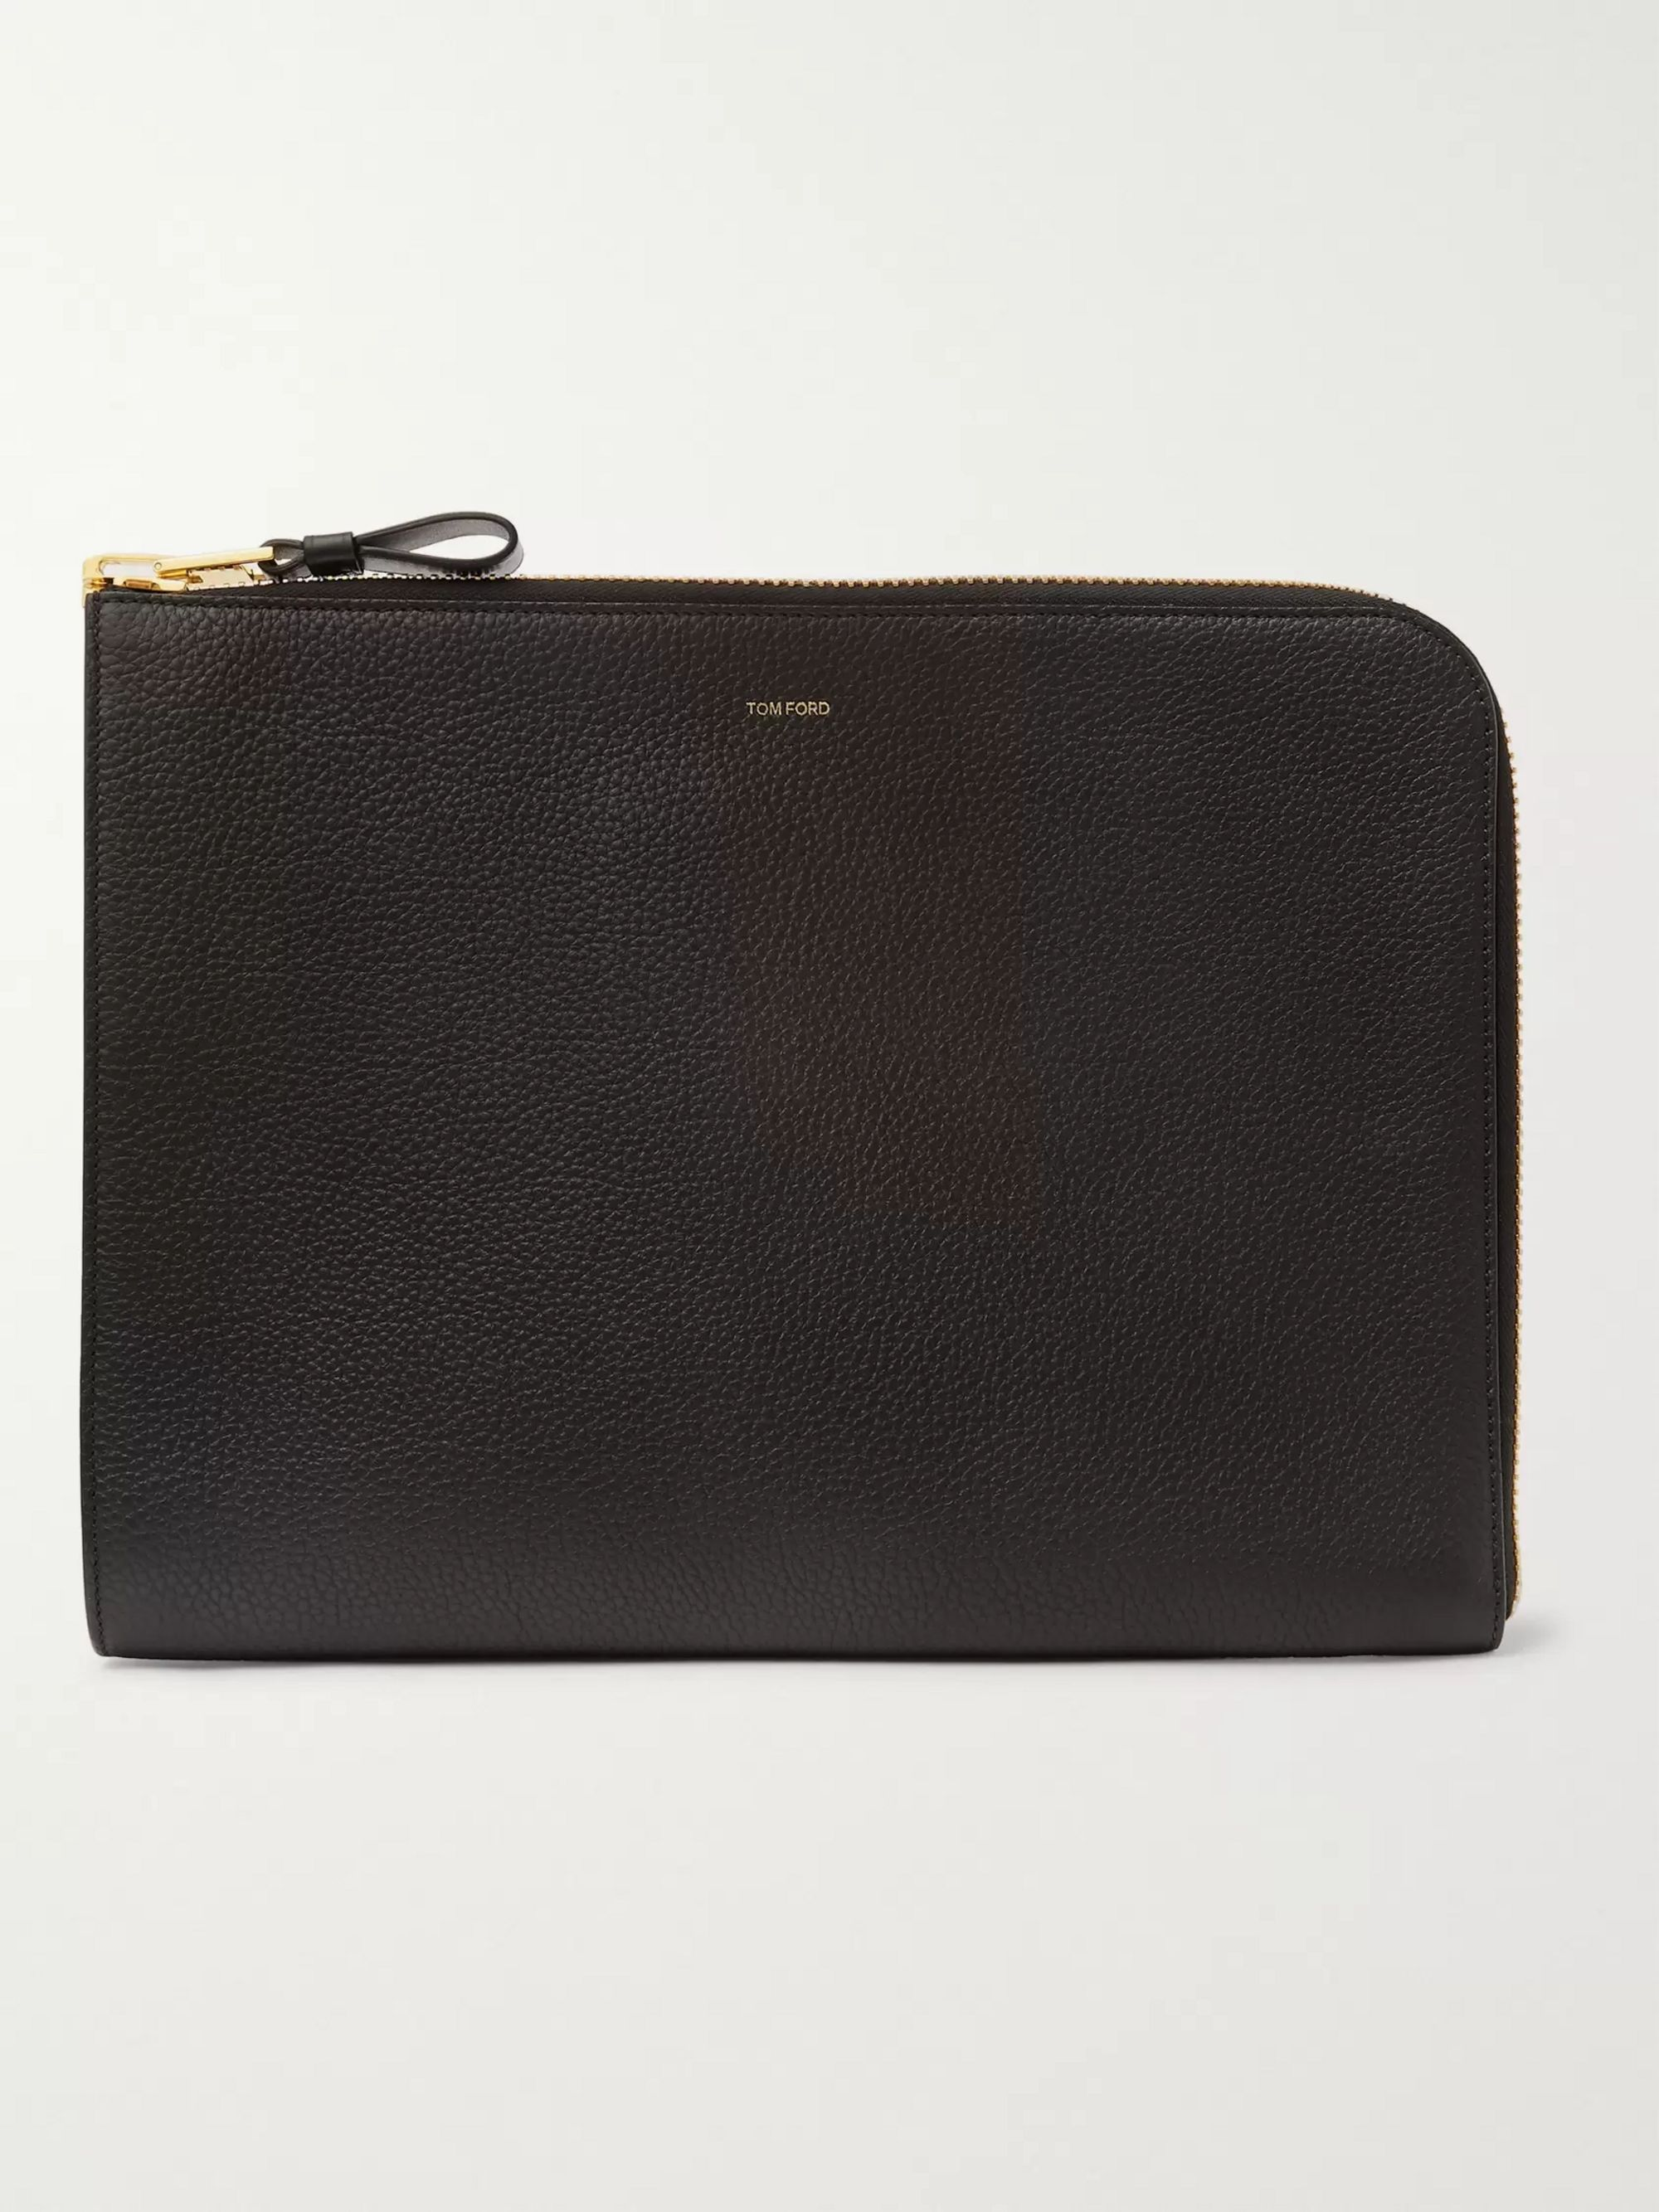 TOM FORD Full-Grain Leather Zip-Around Pouch